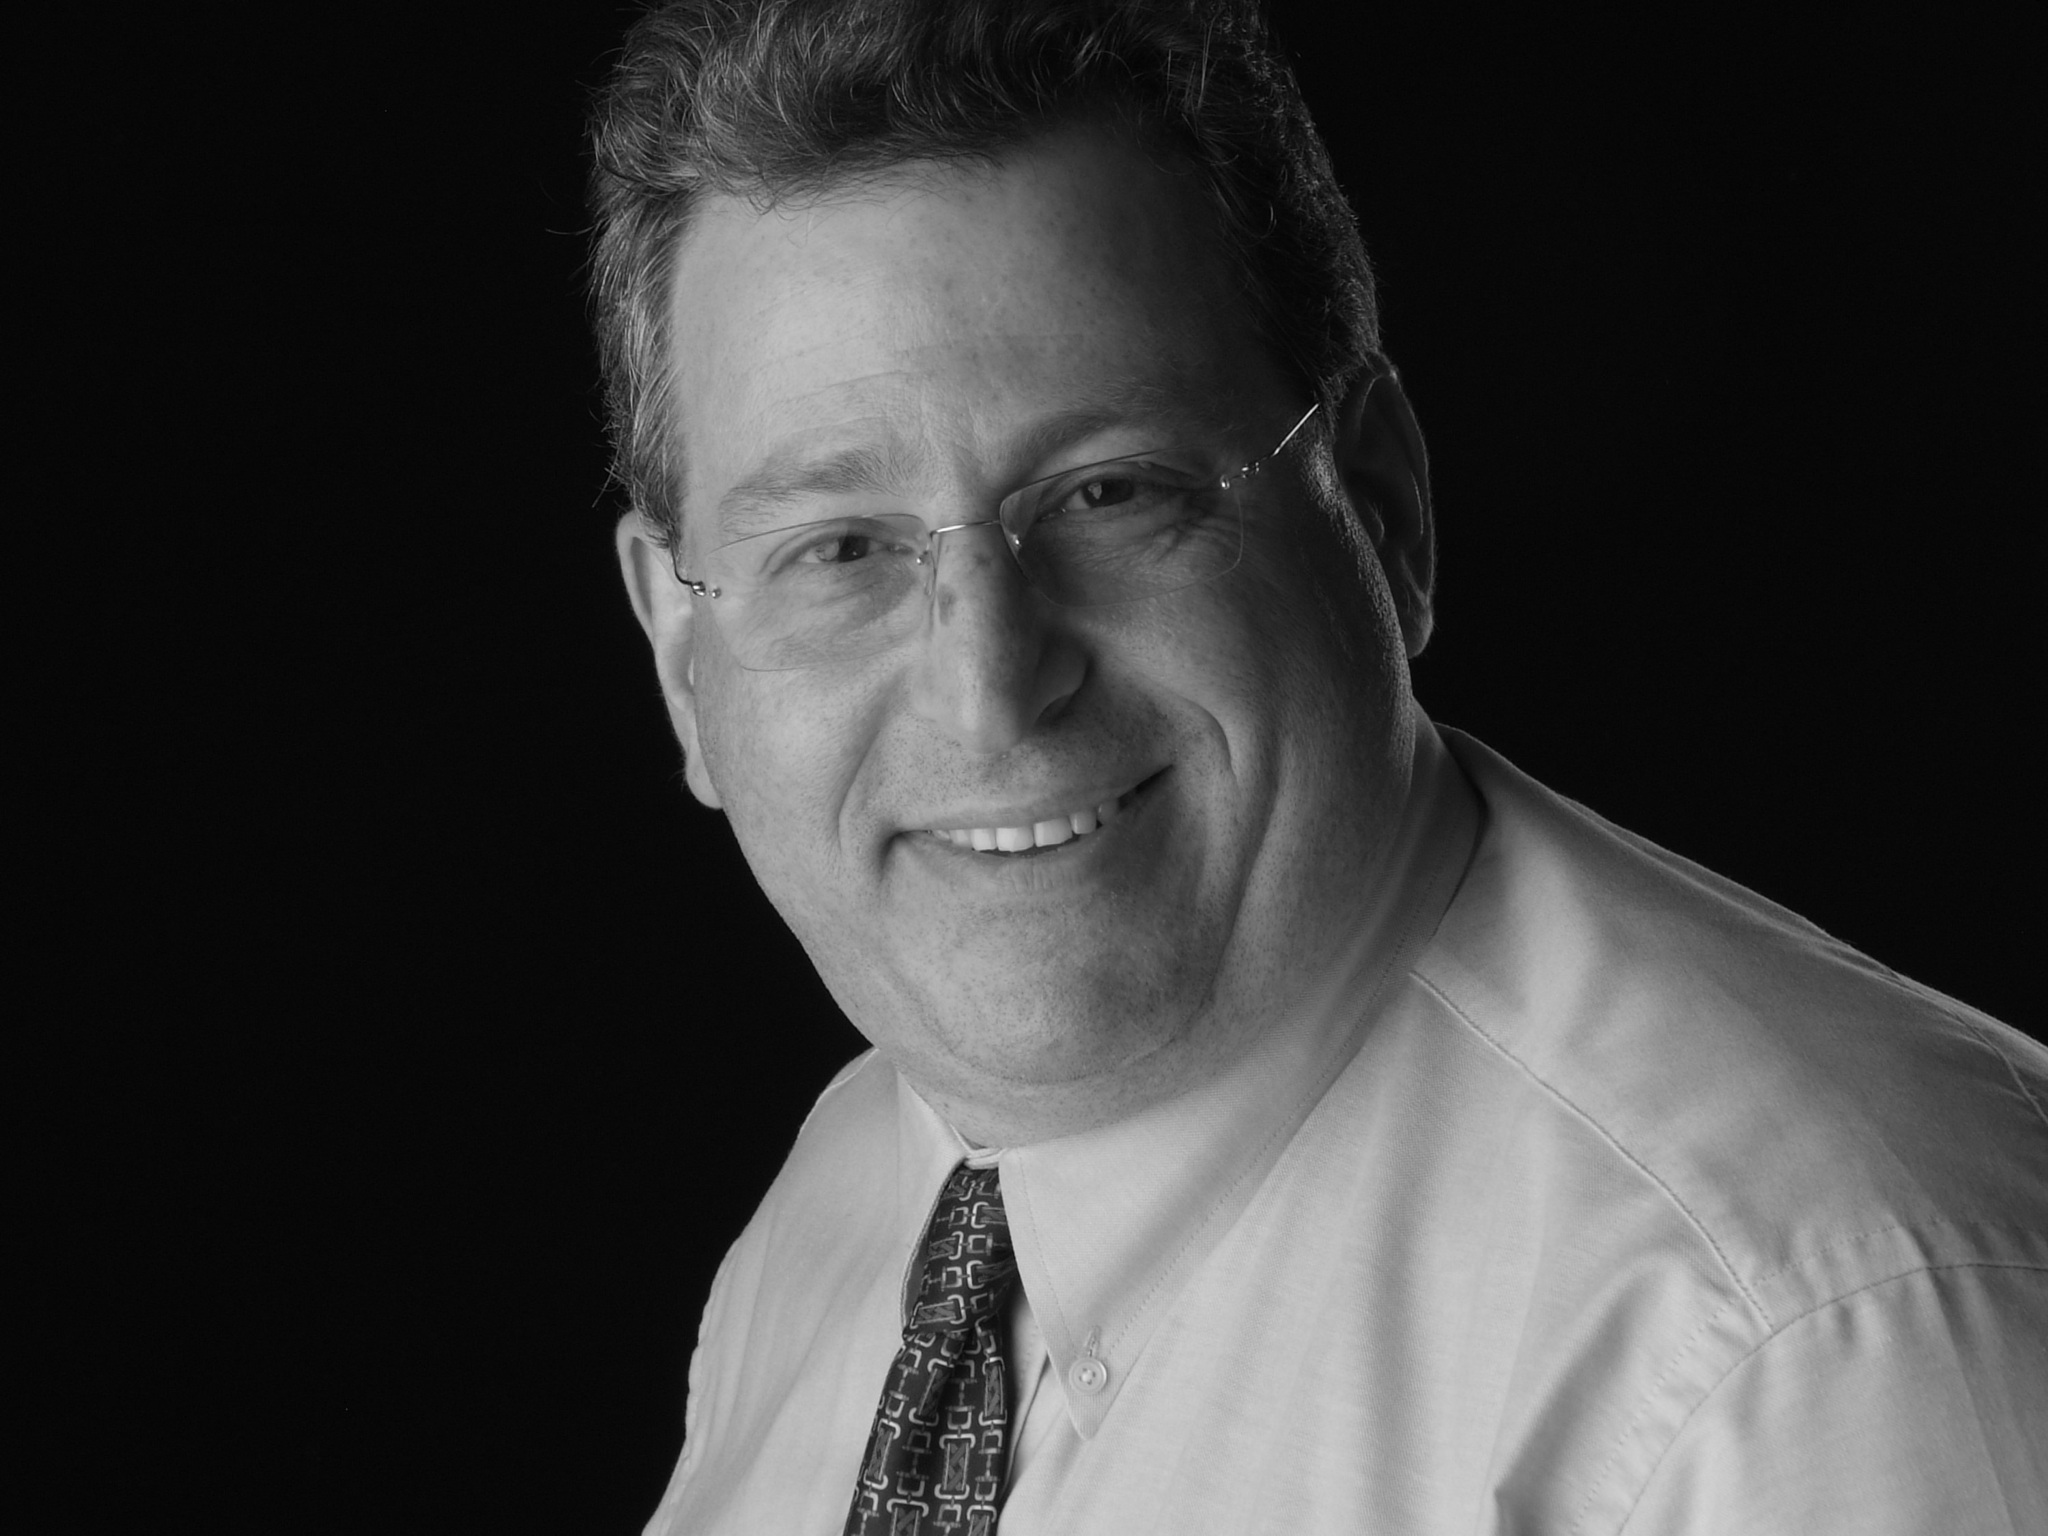 MELVIN LUNN - DIRECTOR OF MOVING UP ESTATES